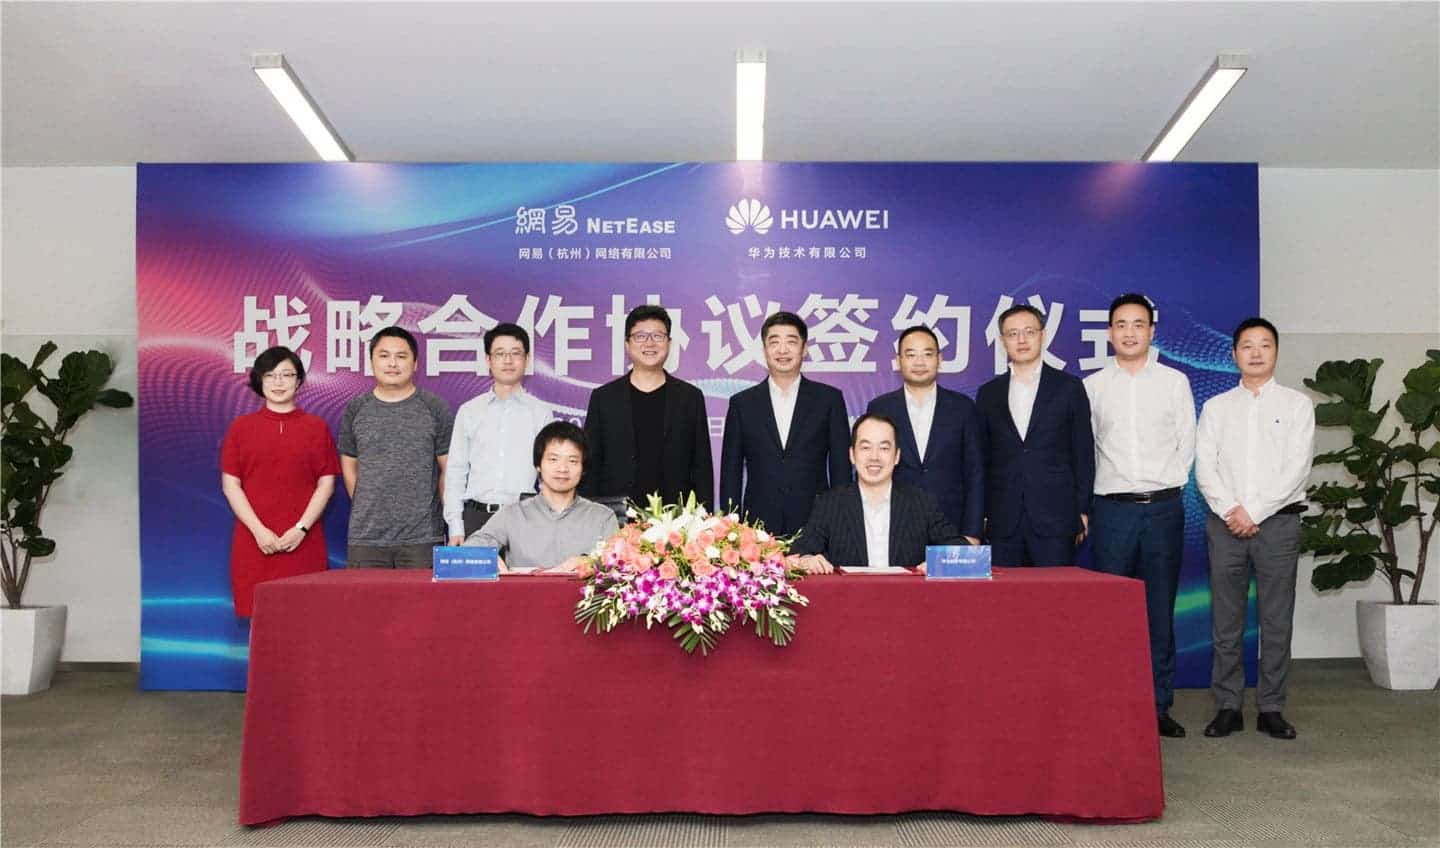 NetEase and Huawei